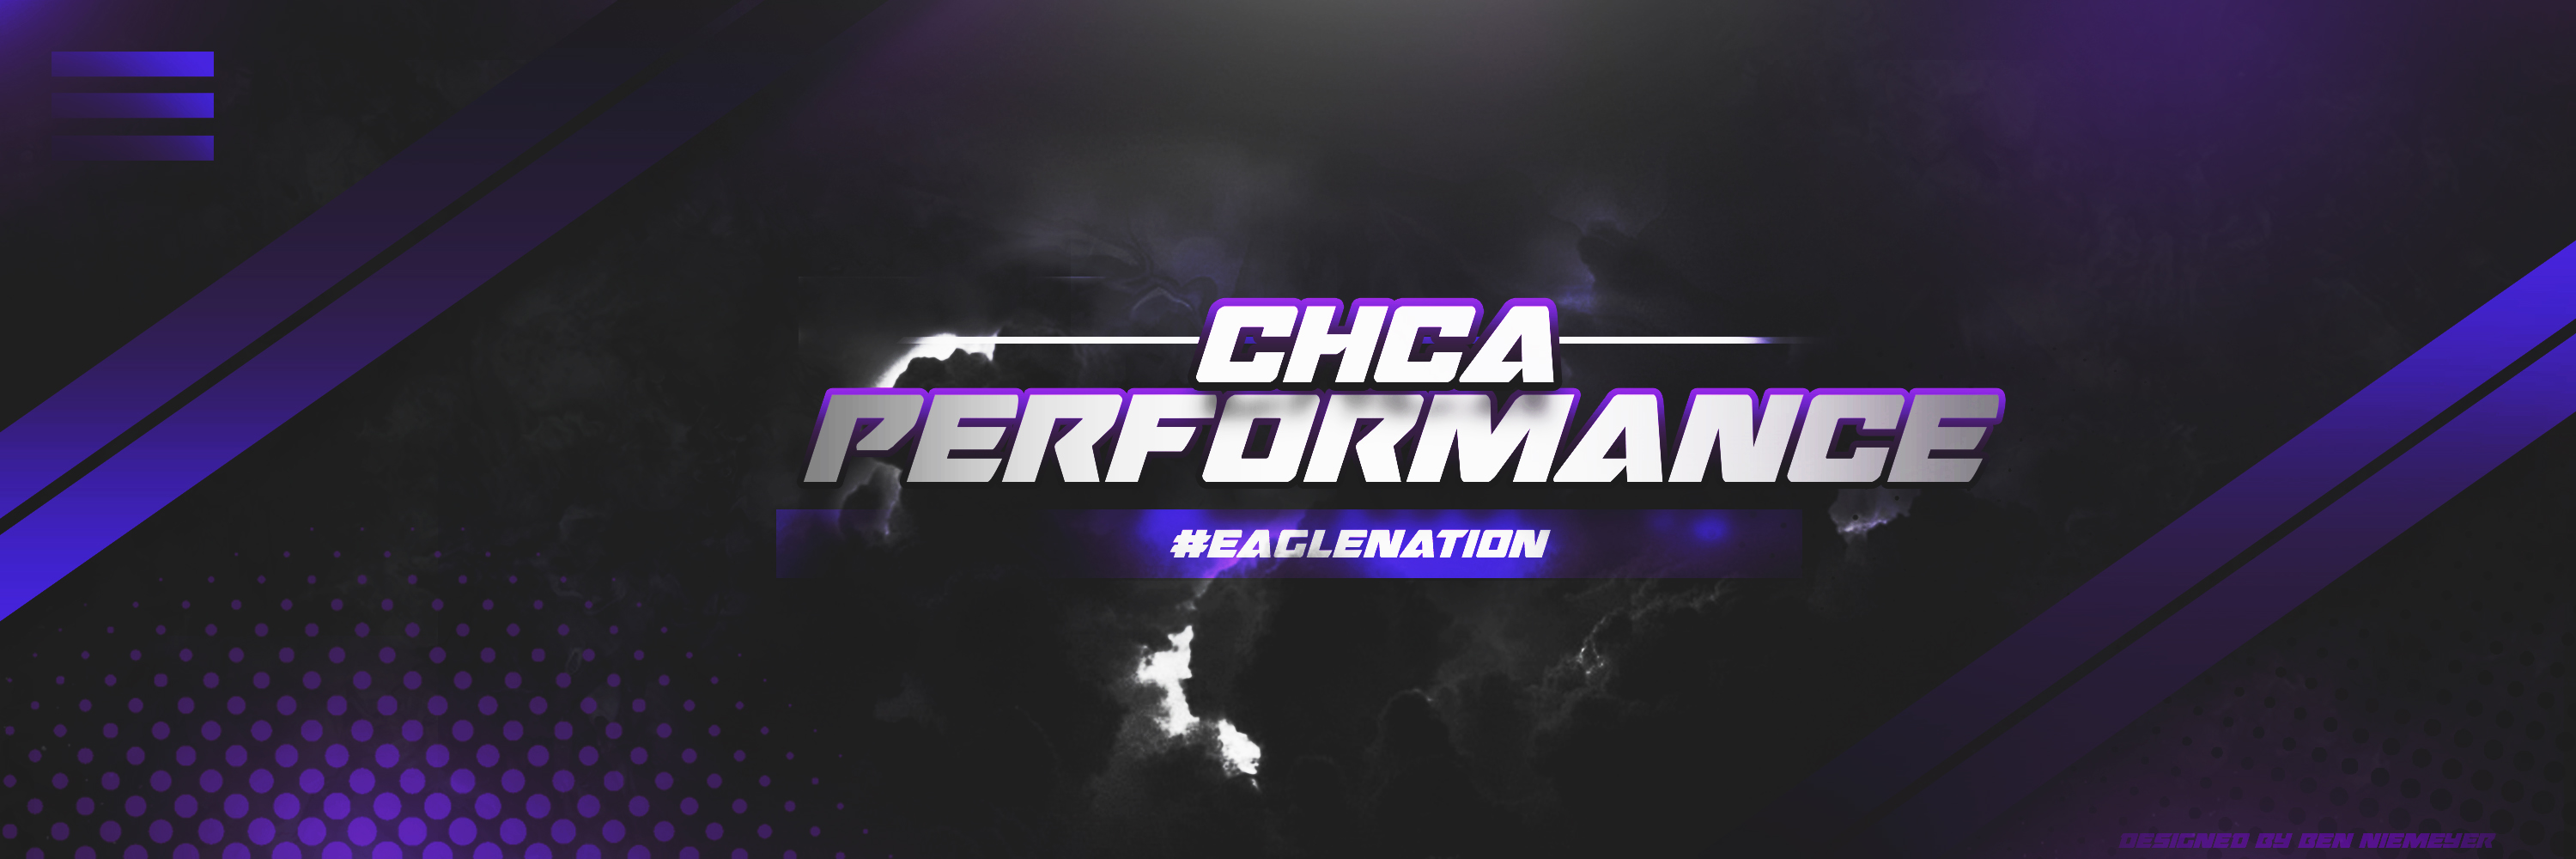 CHCA Performance Twitter Header